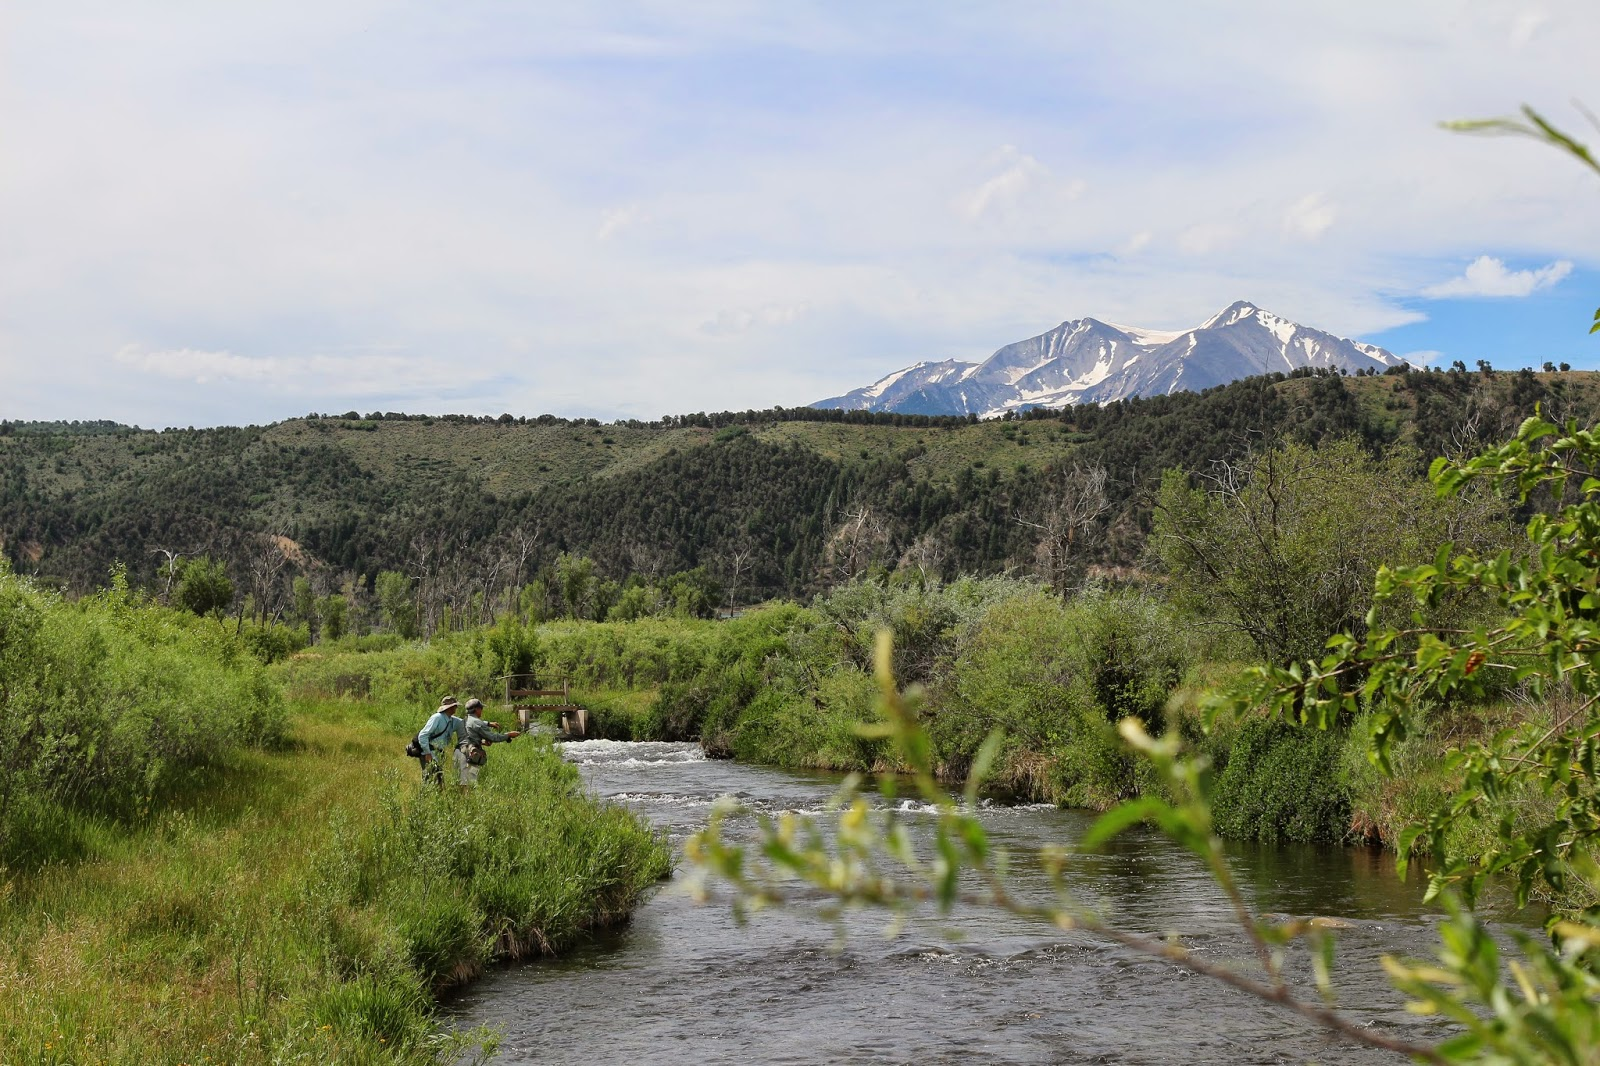 Fly+fish+the+Roaring+Fork+River+in+Colorado+with+Jay+Scott+Outdoors+9.JPG